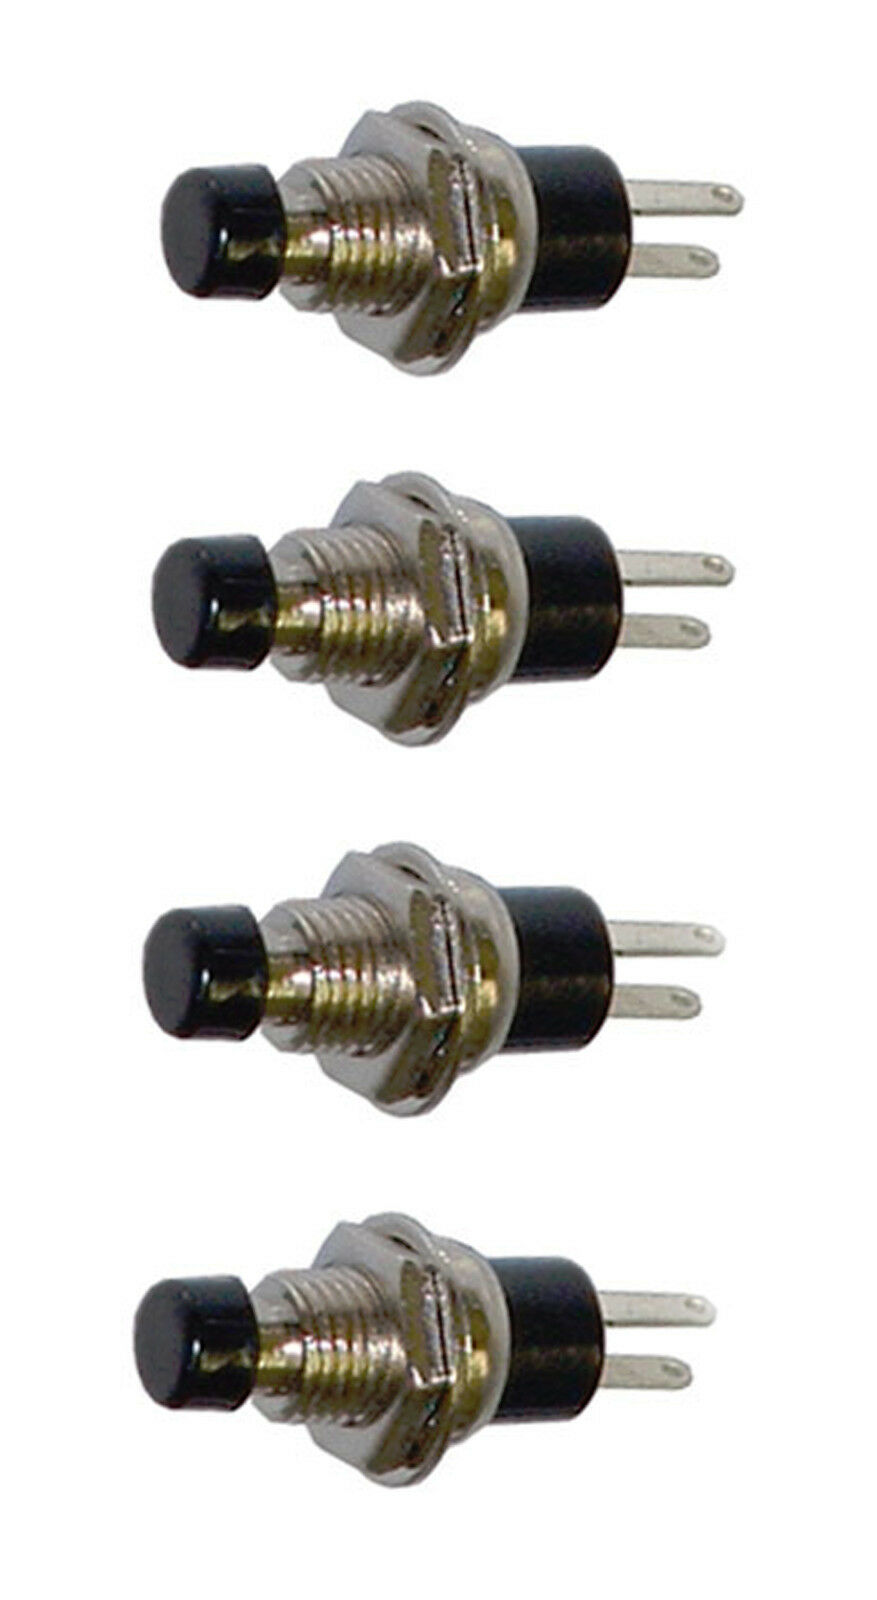 4 Pack Spst Normally Closed Momentary Push Button Switch Black 25020 Relay 1 Of 1free Shipping